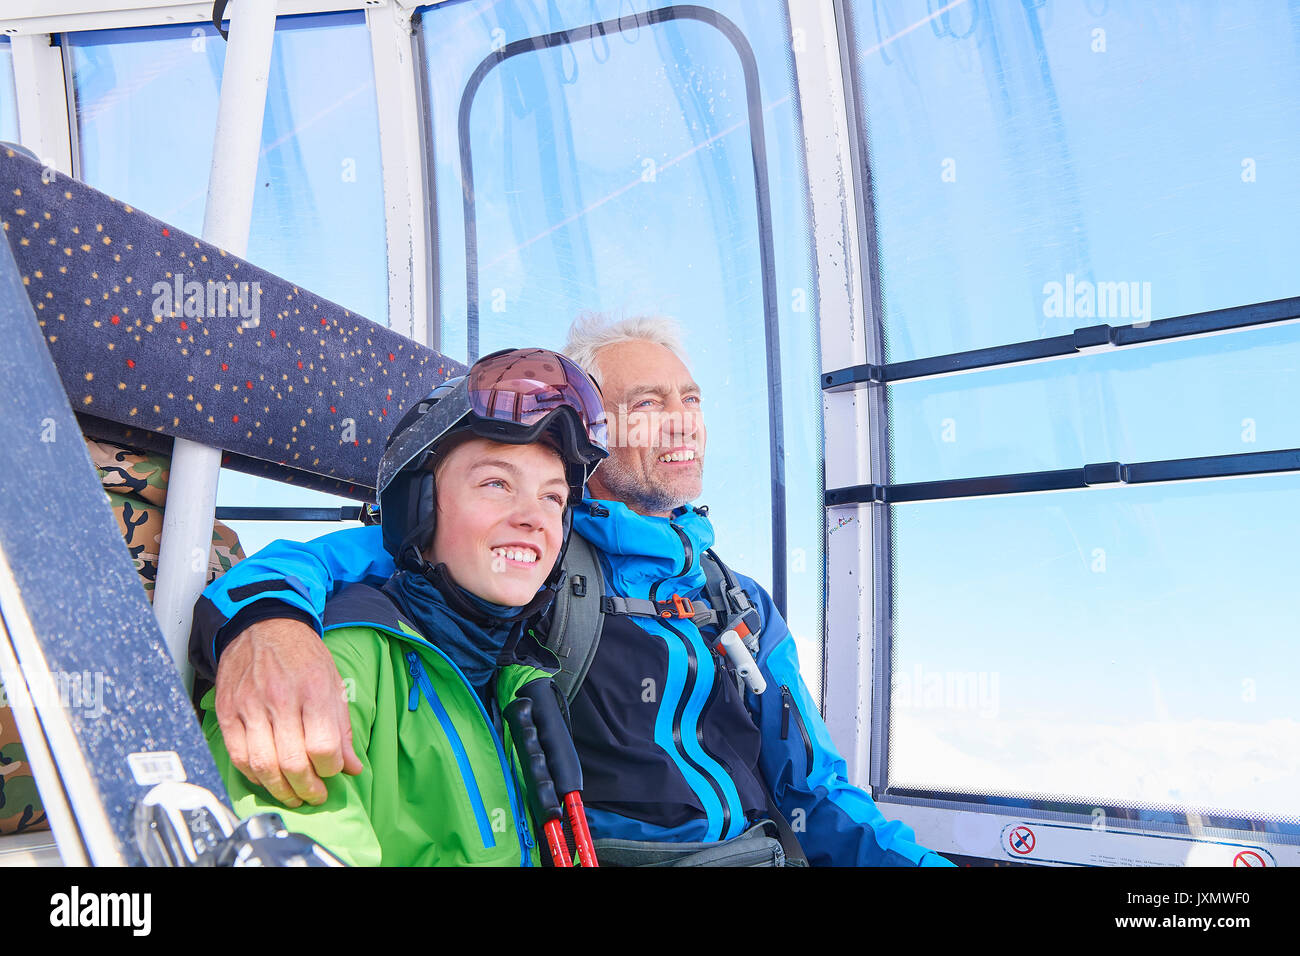 Father and son in cable car, Hintertux, Tirol, Austria - Stock Image